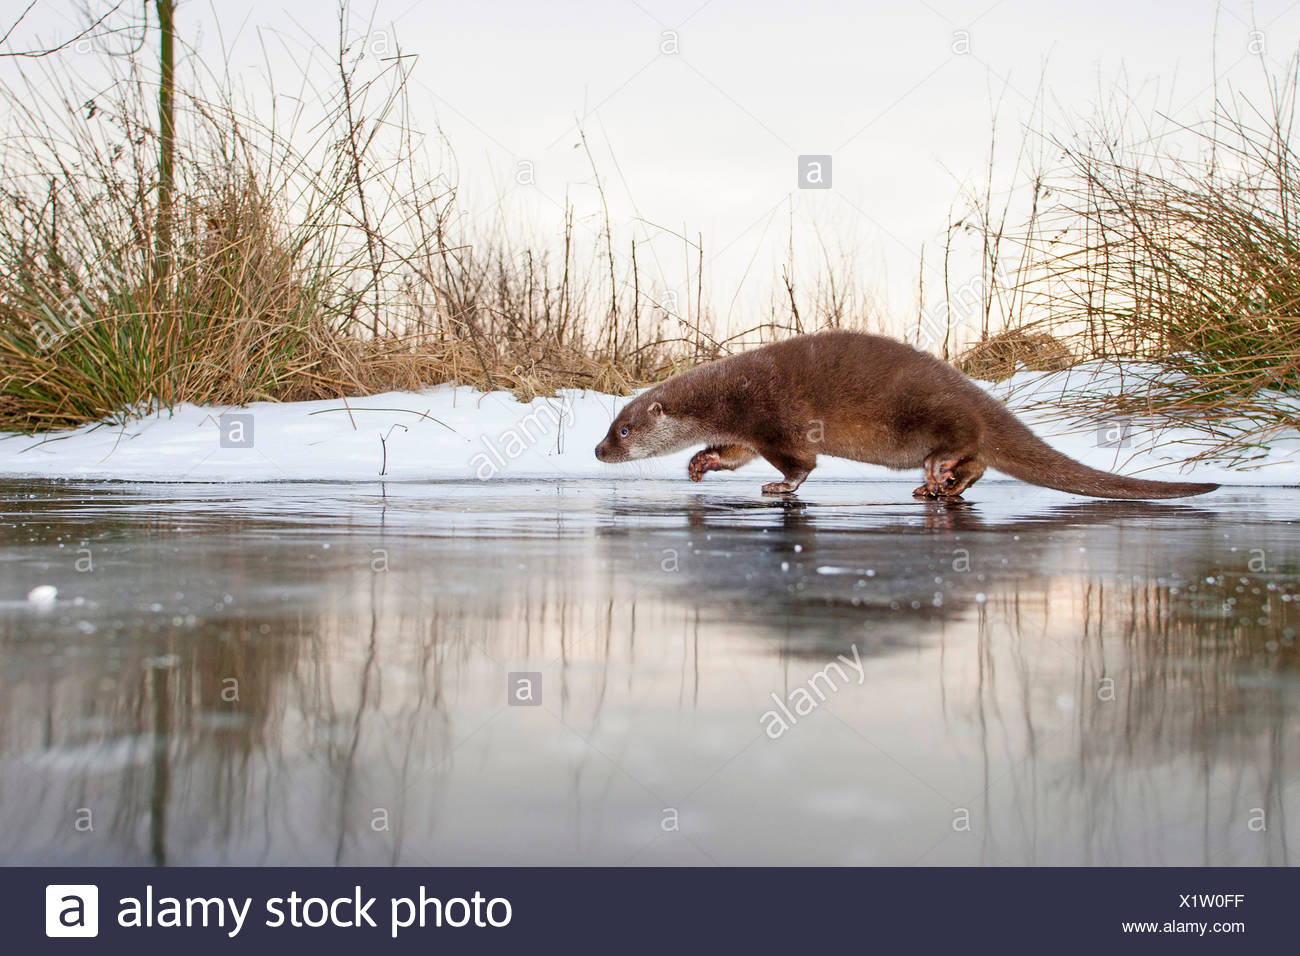 European river otter, European Otter, Eurasian Otter (Lutra lutra), female walking on a frozen up ice cap, Germany - Stock Image